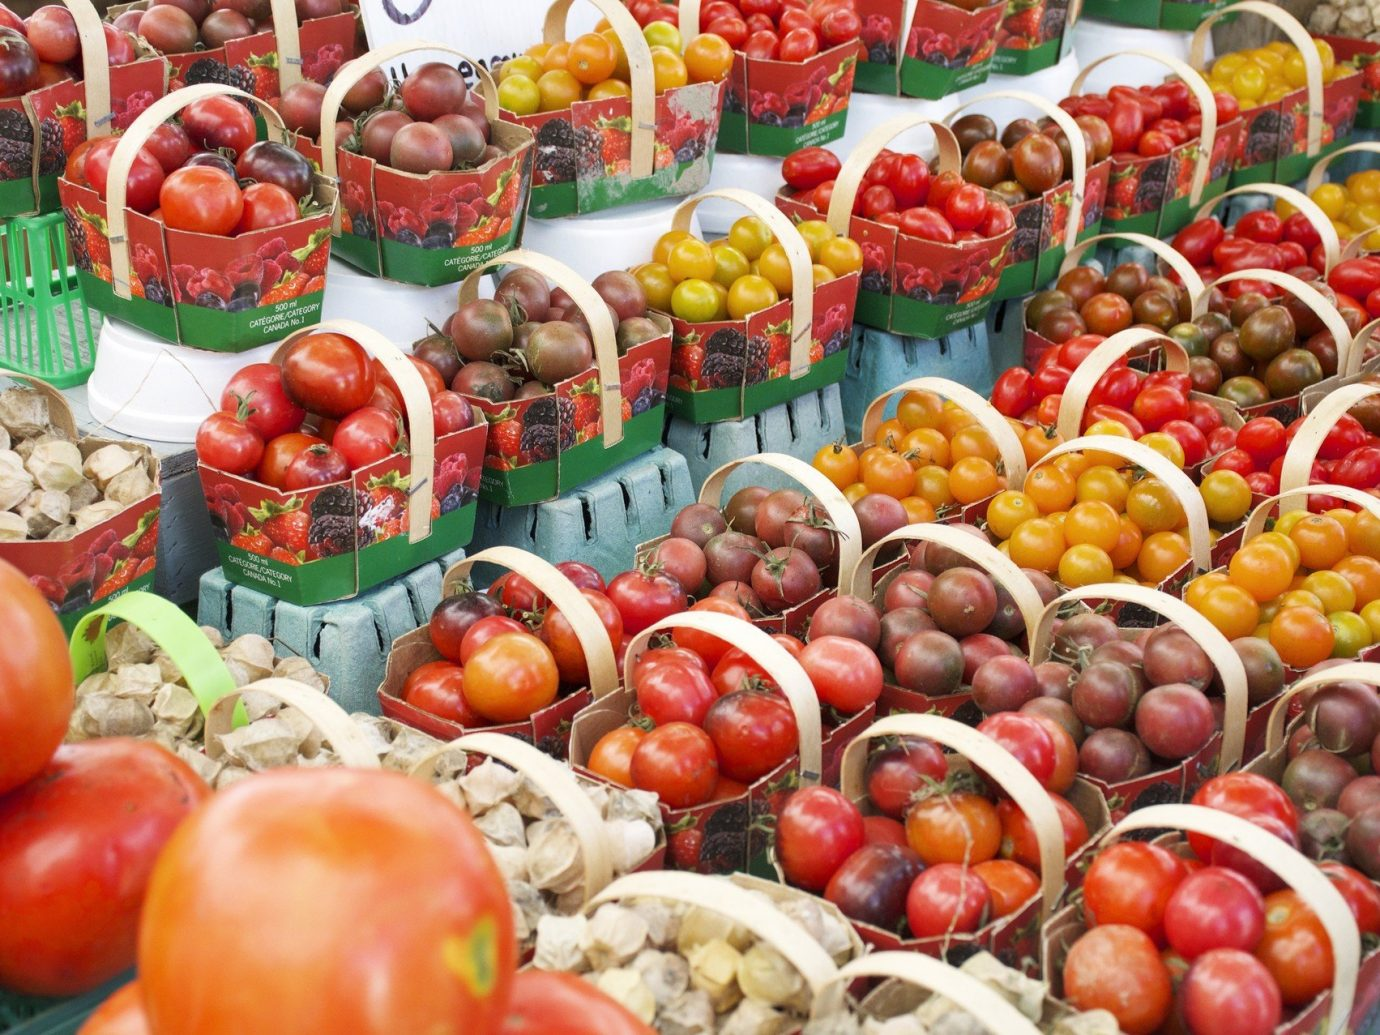 Jetsetter Guides local food food public space City produce marketplace plant fruit human settlement market land plant vegetable tomato flowering plant seafood boil greengrocer arranged variety